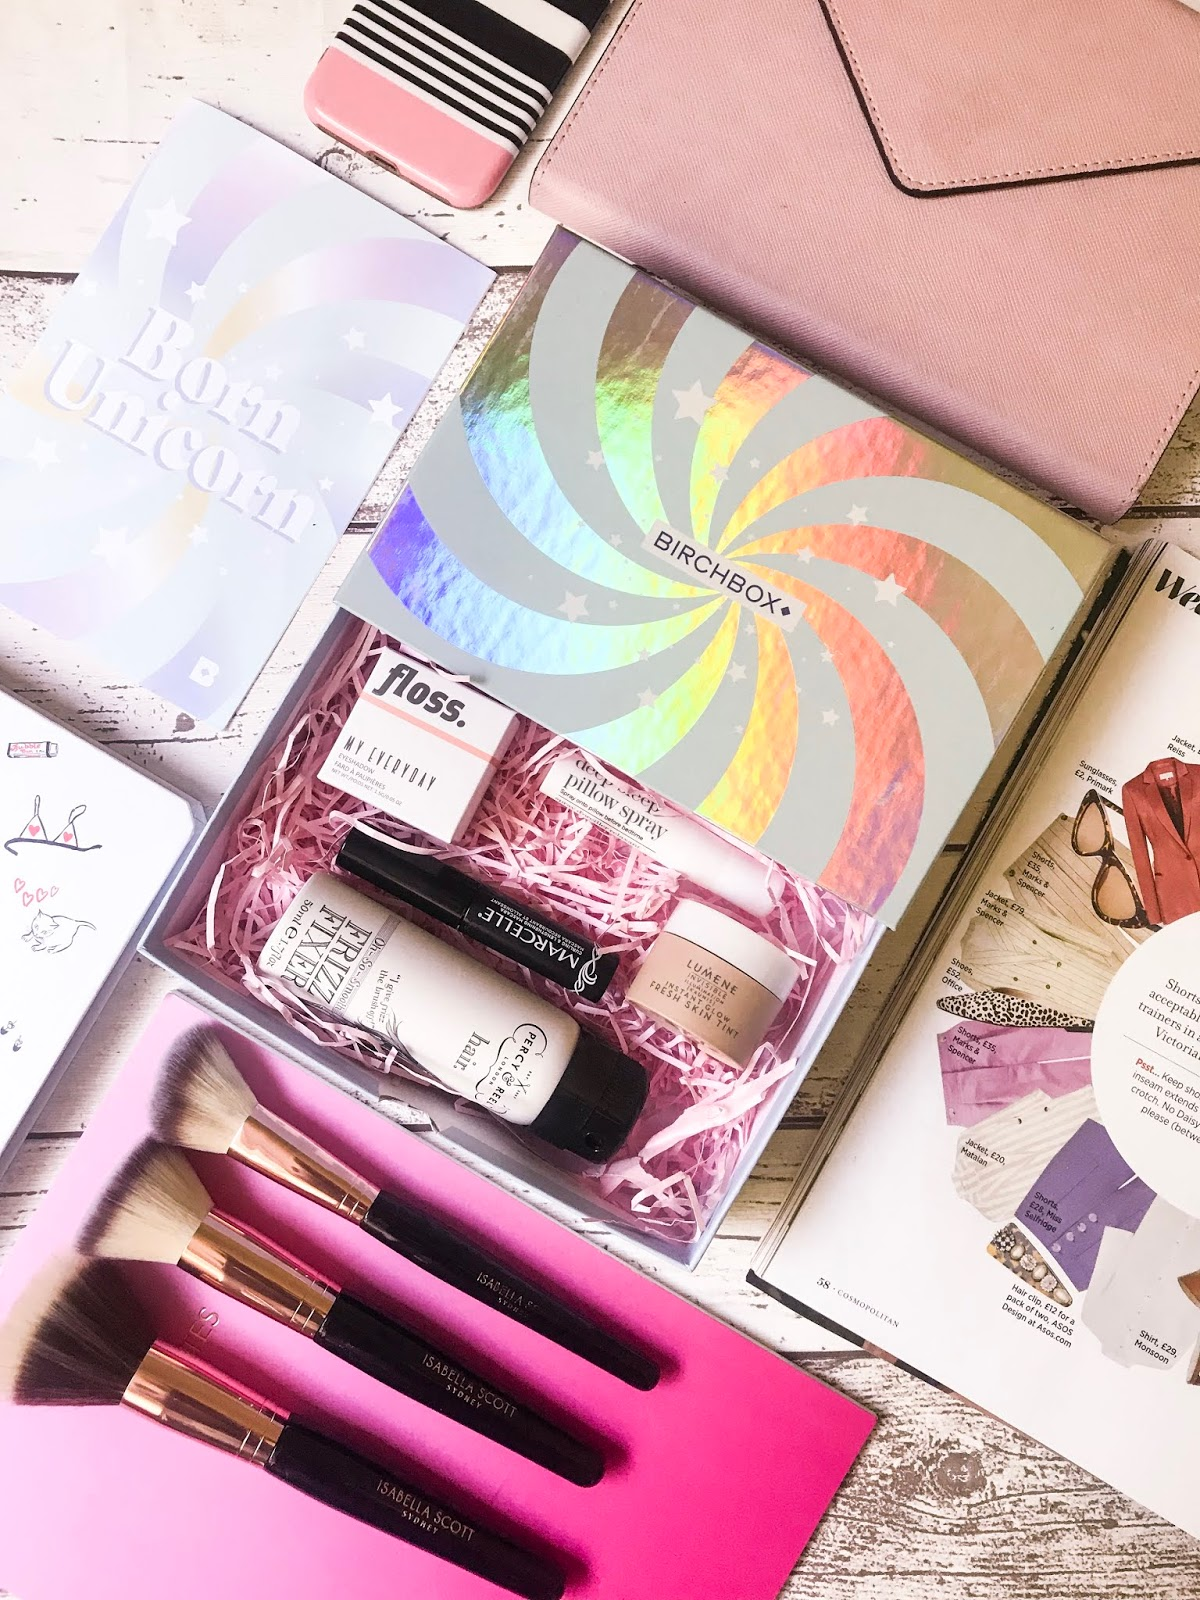 birchbox flatlay with products, notebooks and makeup brushes